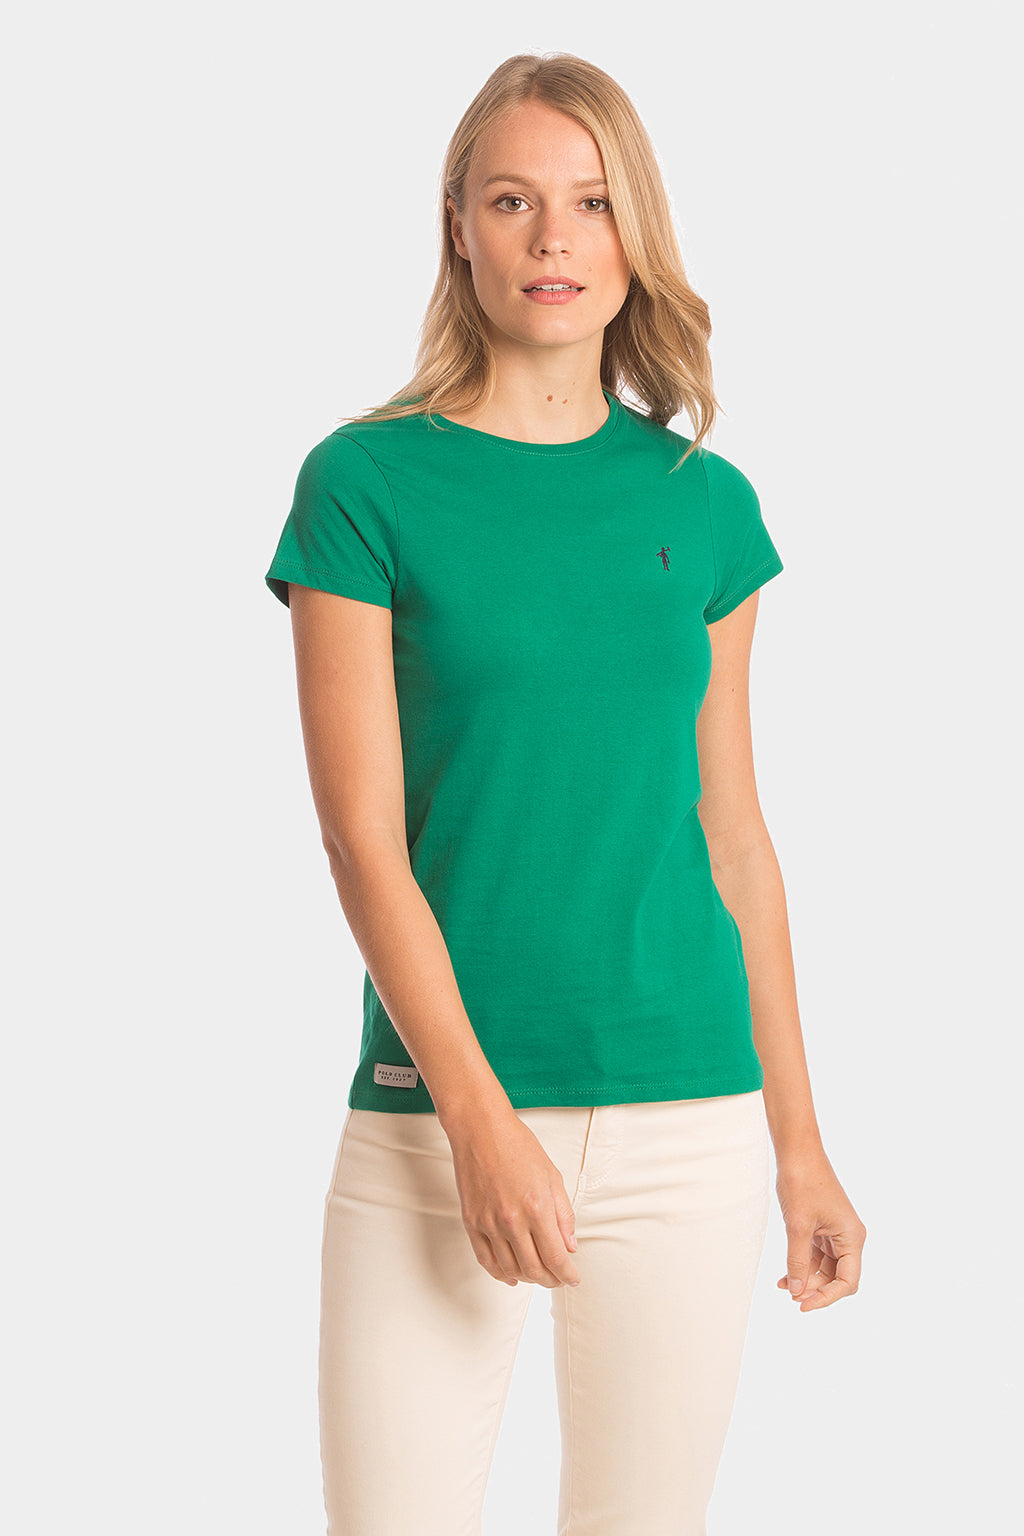 Green cotton T-shirt with embroidered logo